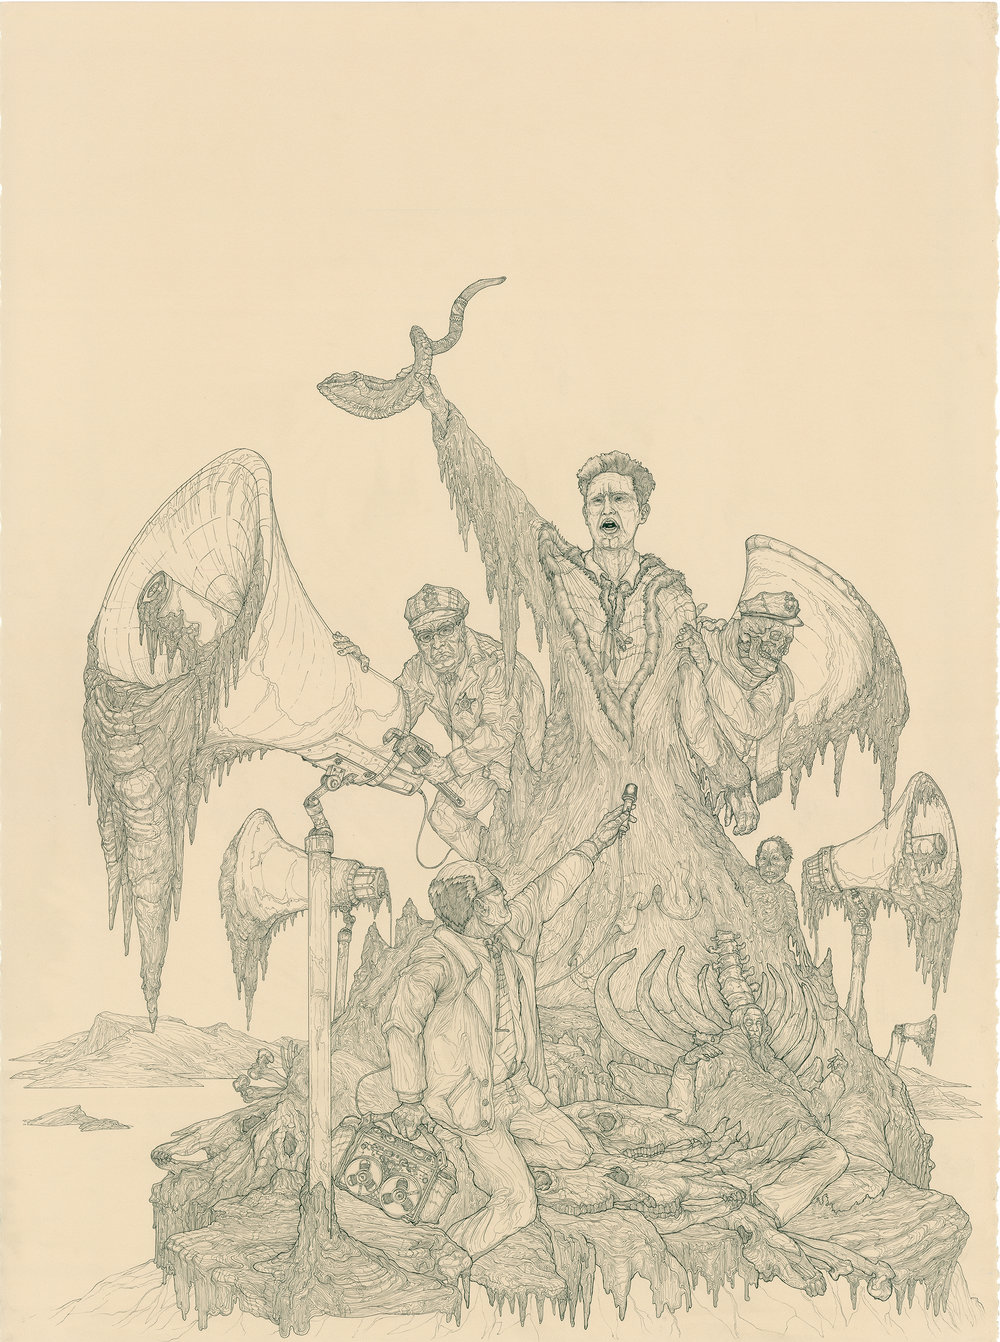 Mario Savio's Ice Shirt Ghost Dance, ink on paper, 30in. x 22in., 2007